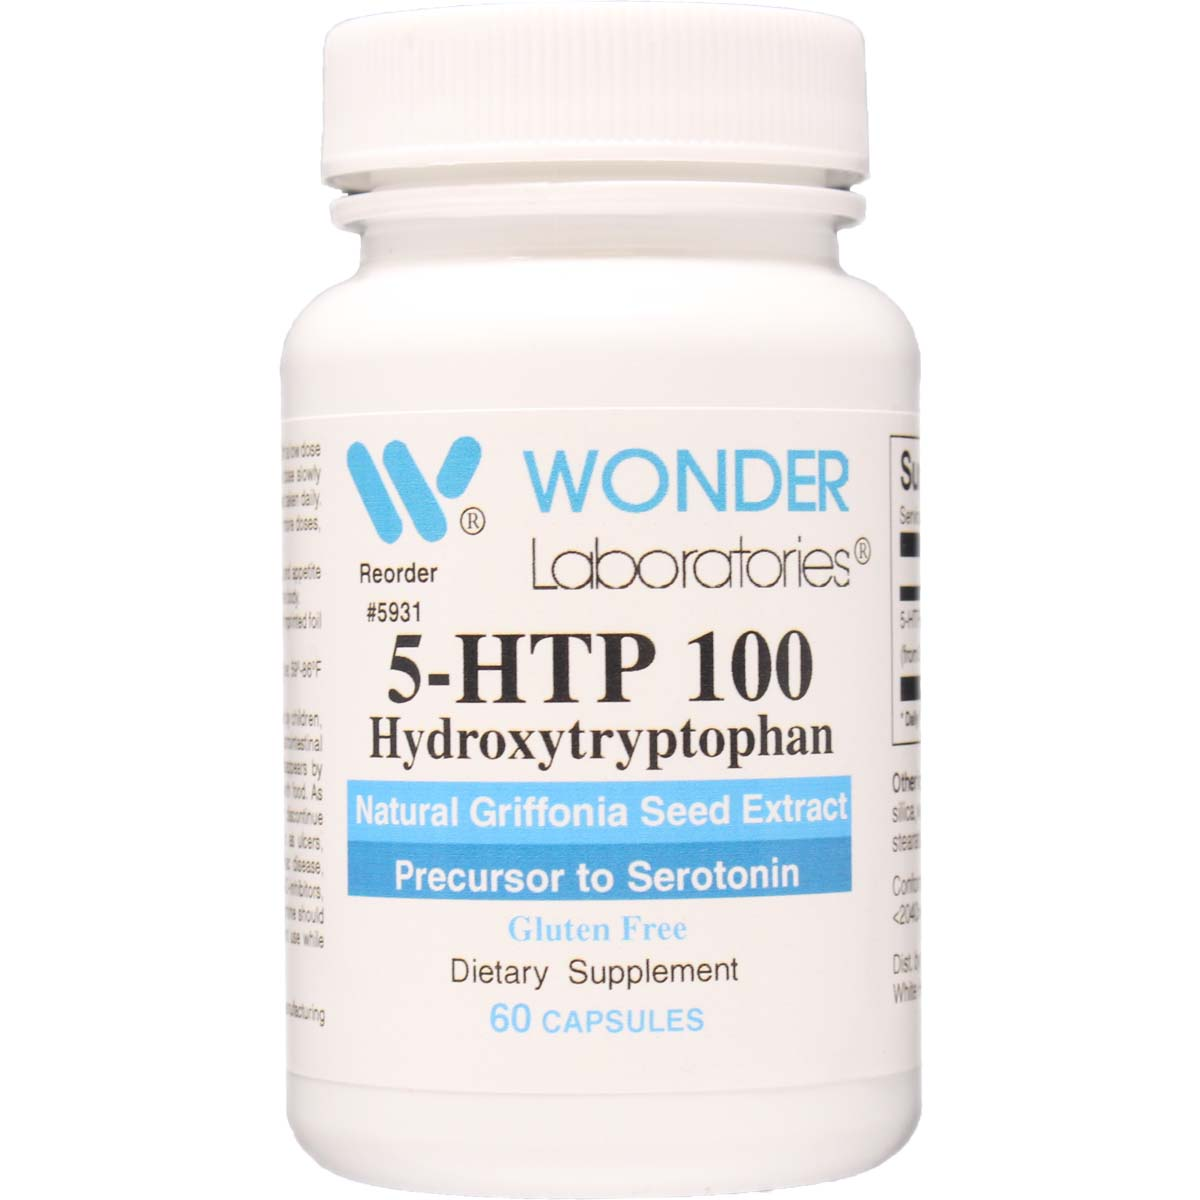 Recommended dosage for 5 htp